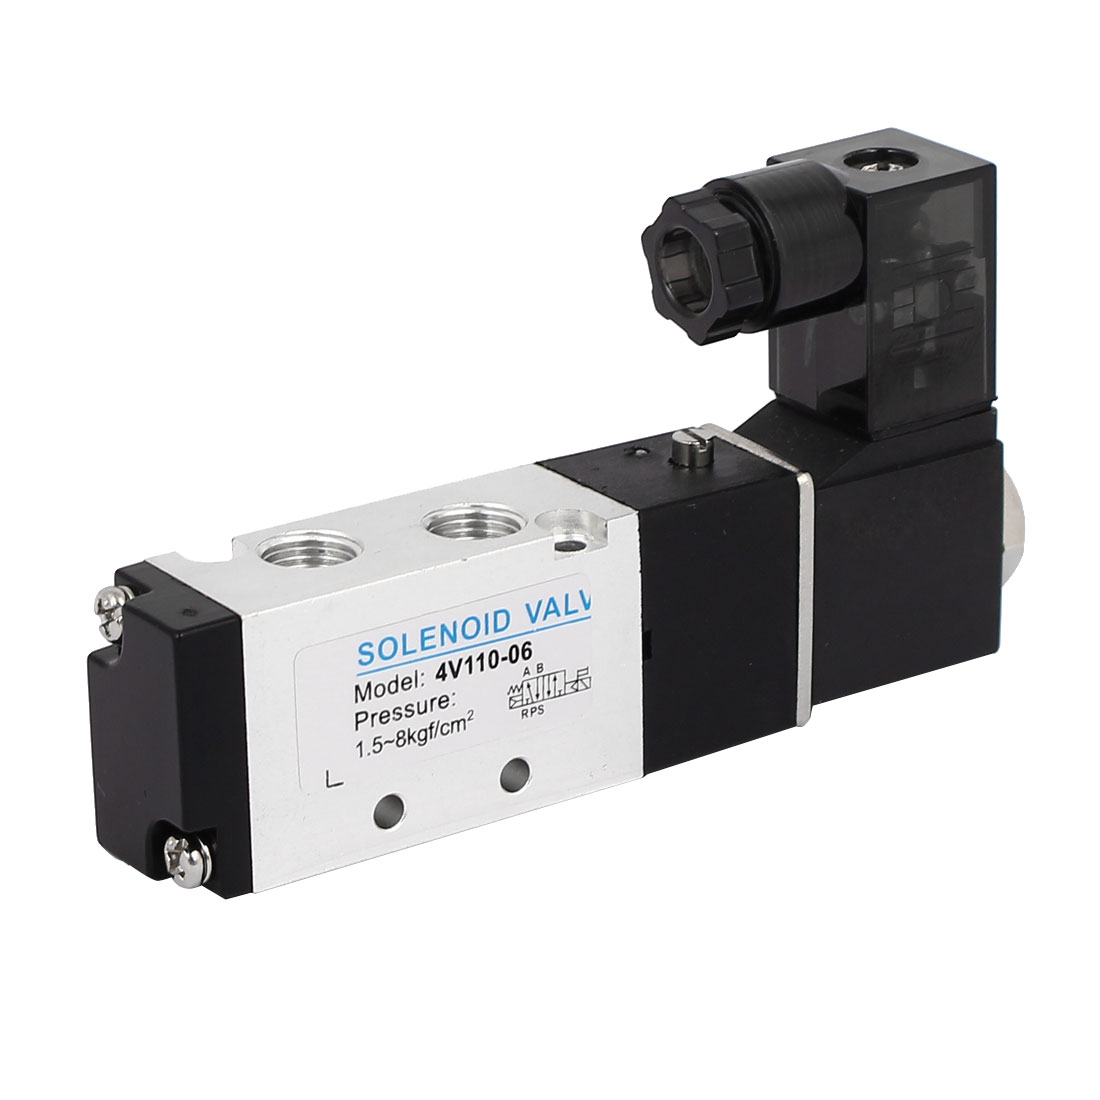 AC 220V 2 Position 5 Way Neutral Pneumatic Air Control Solenoid Valve 4V110-06